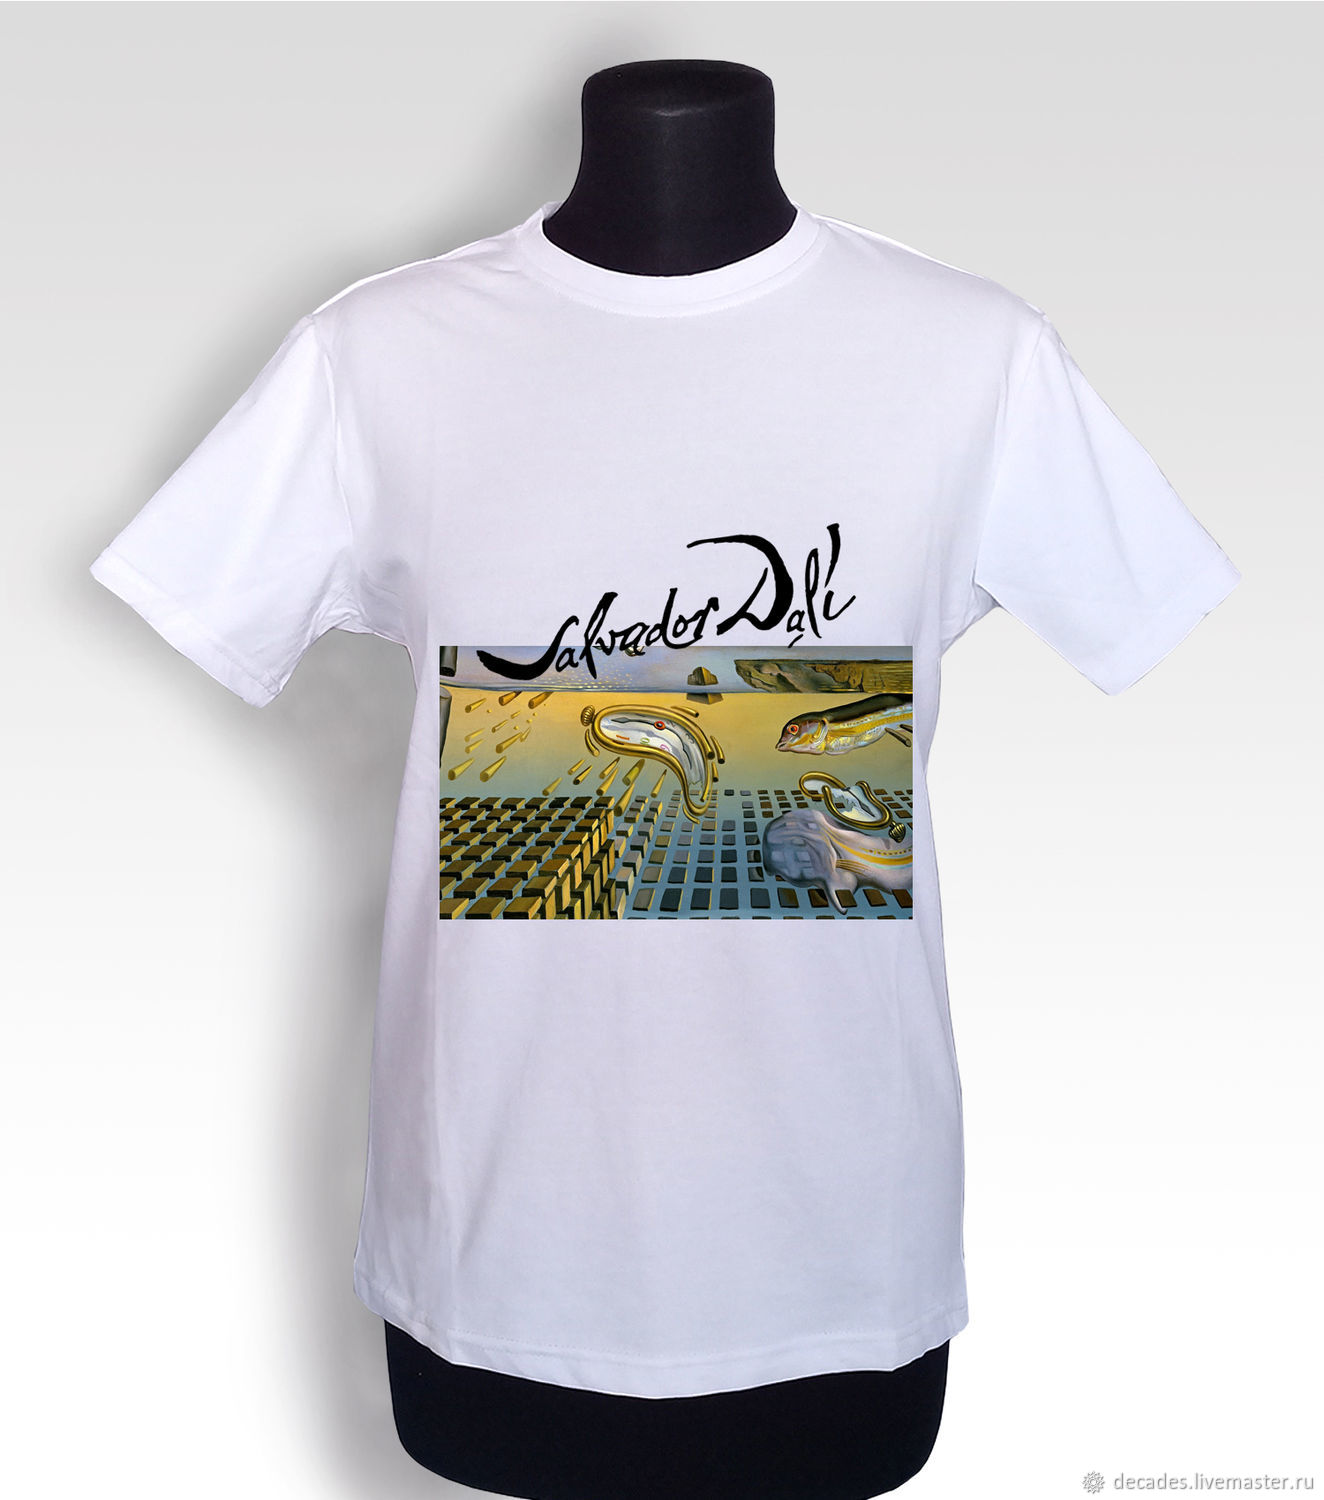 t-shirt: T-Shirt Time With. Dali №1, T-shirts, Moscow,  Фото №1